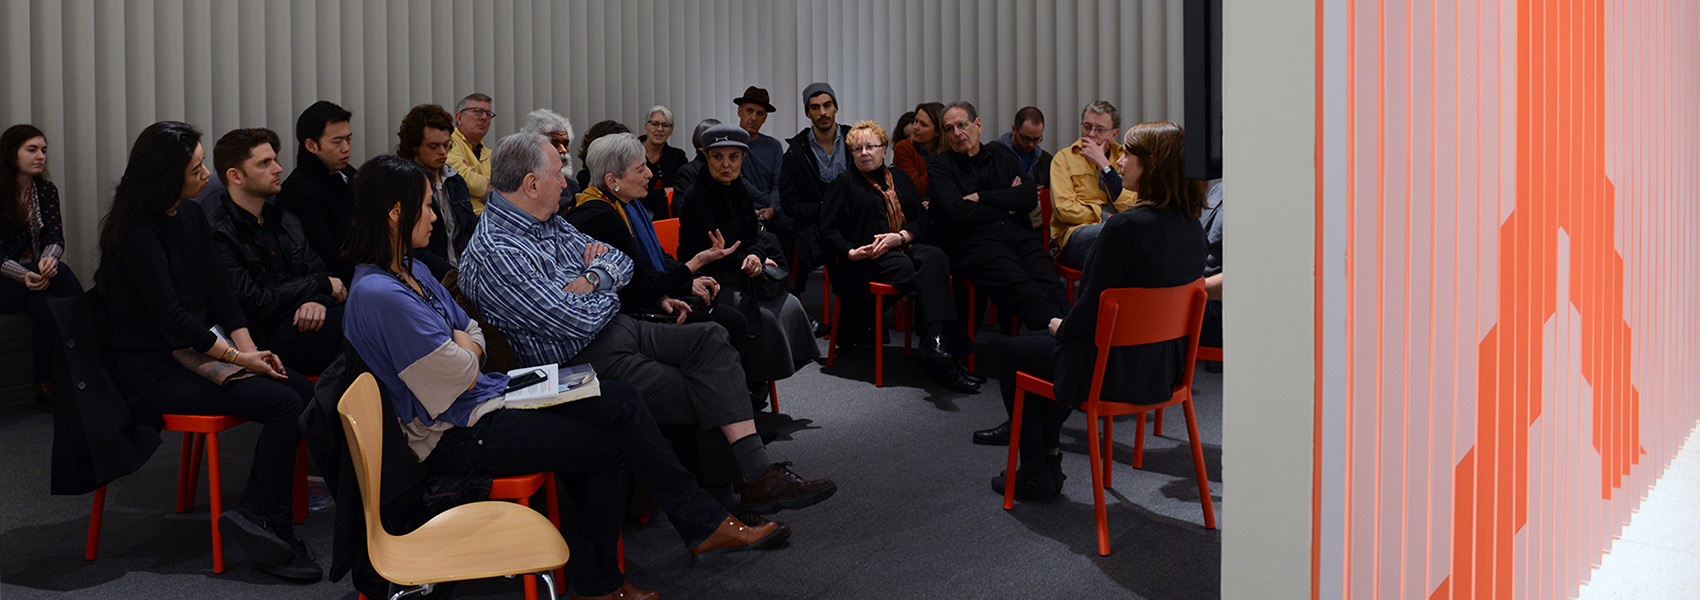 Lecture in GalleryX during the Smart's 40th anniversary